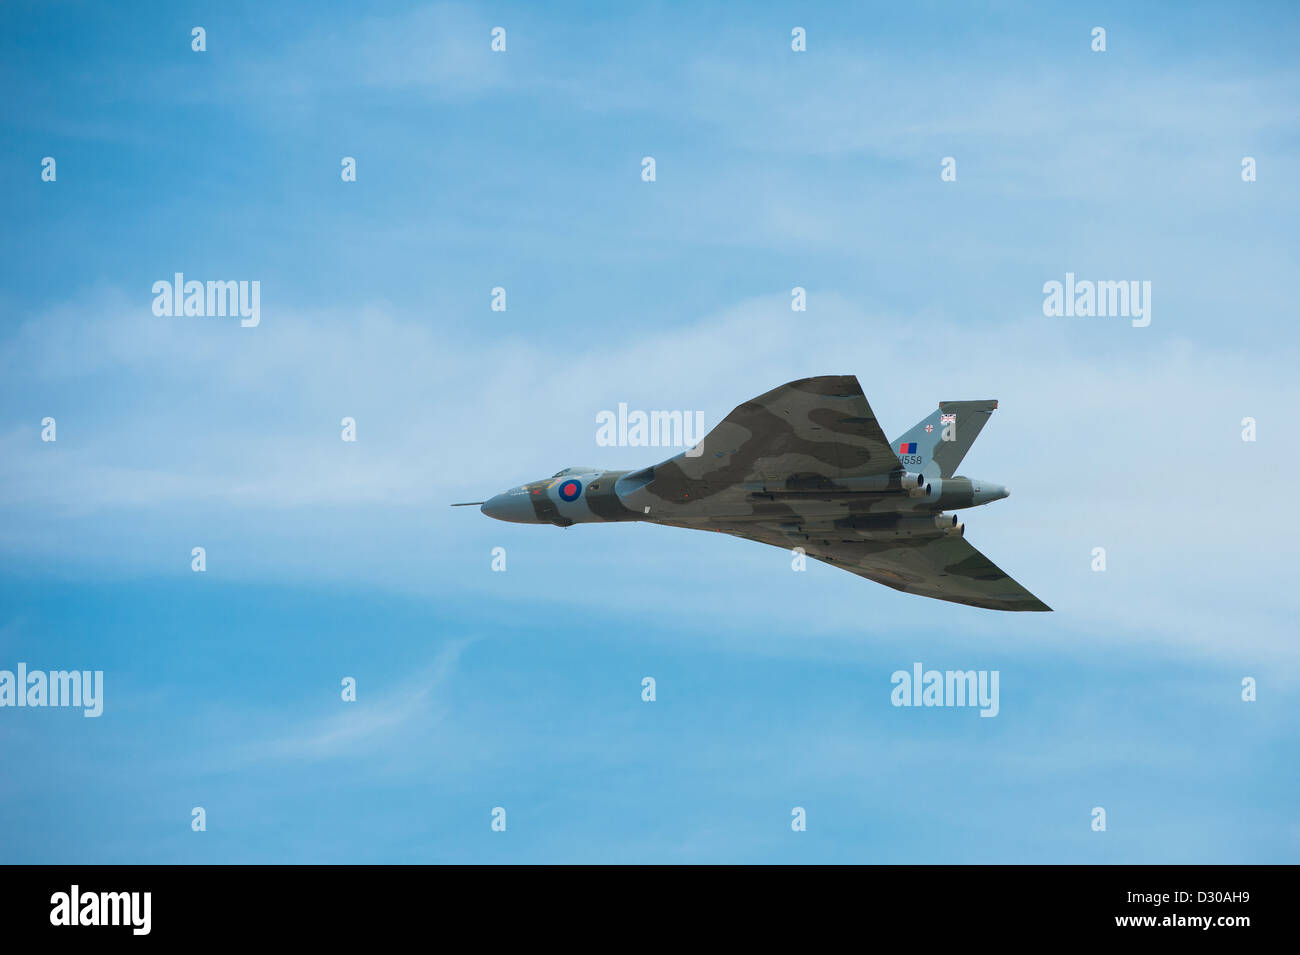 The beautiful Avro Vulcan bomber in flight following restoration. - Stock Image